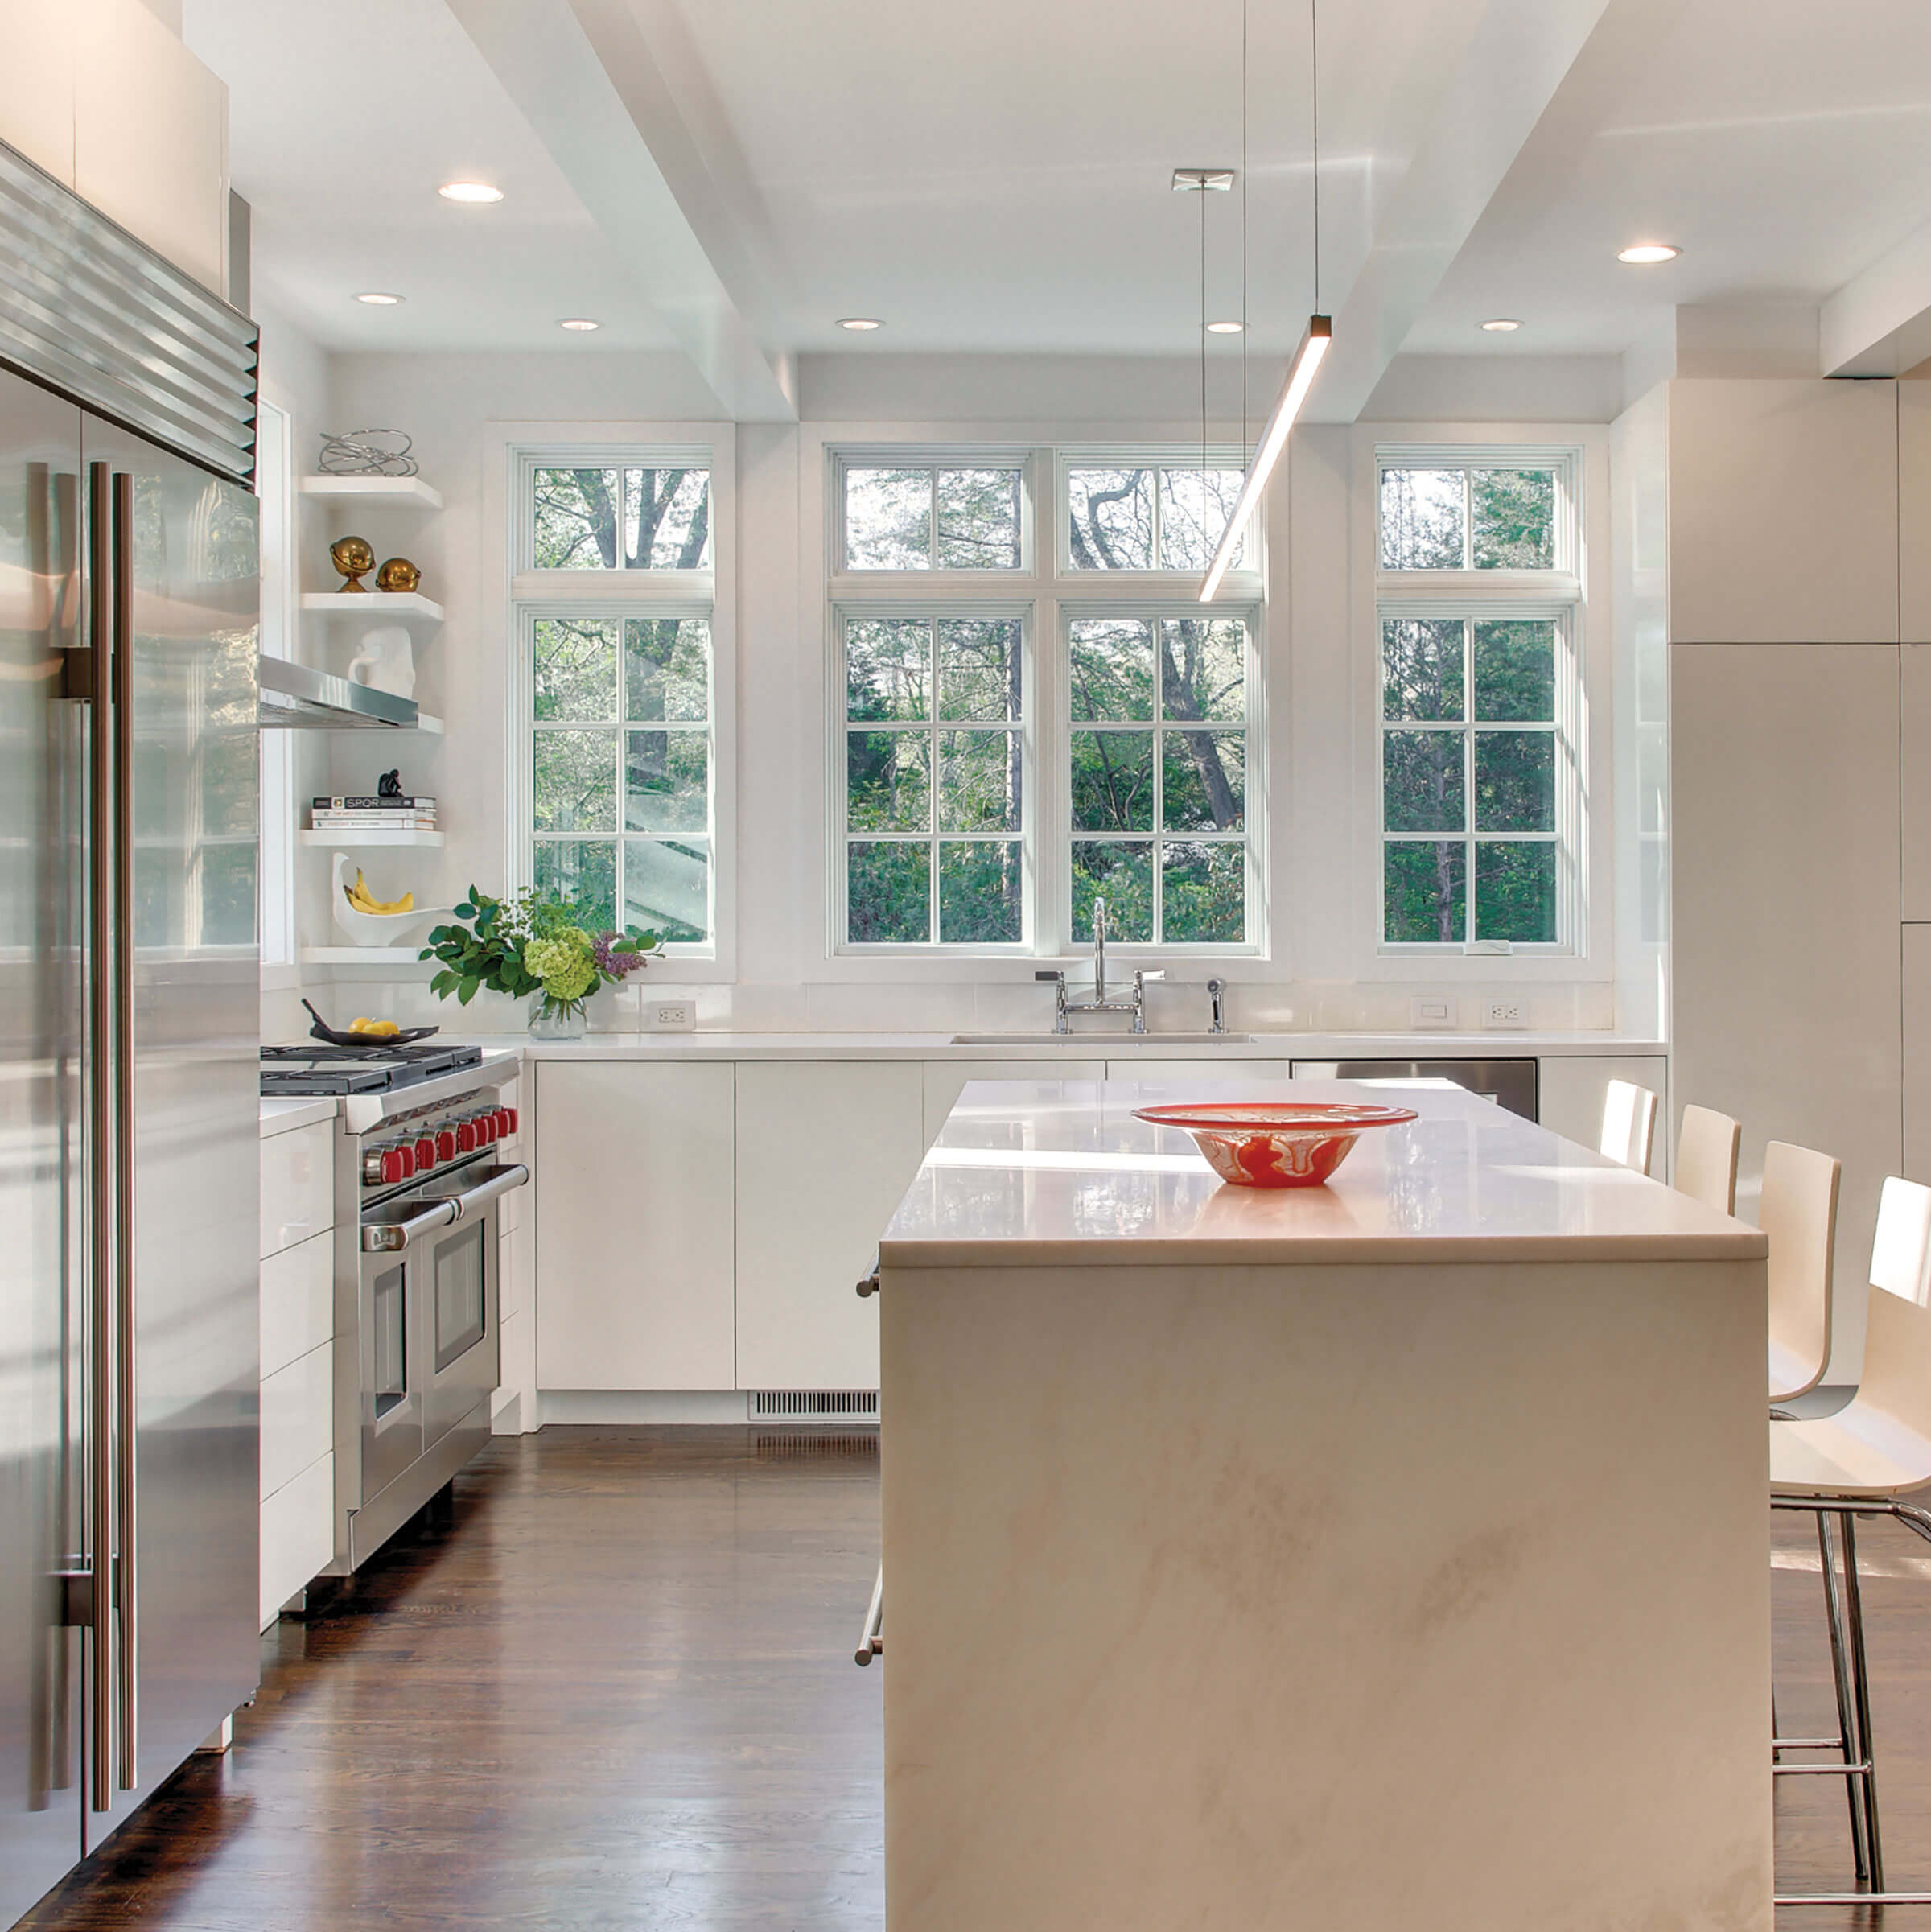 White Kitchen With Marvin Elevate Casement Narrow Frame Windows